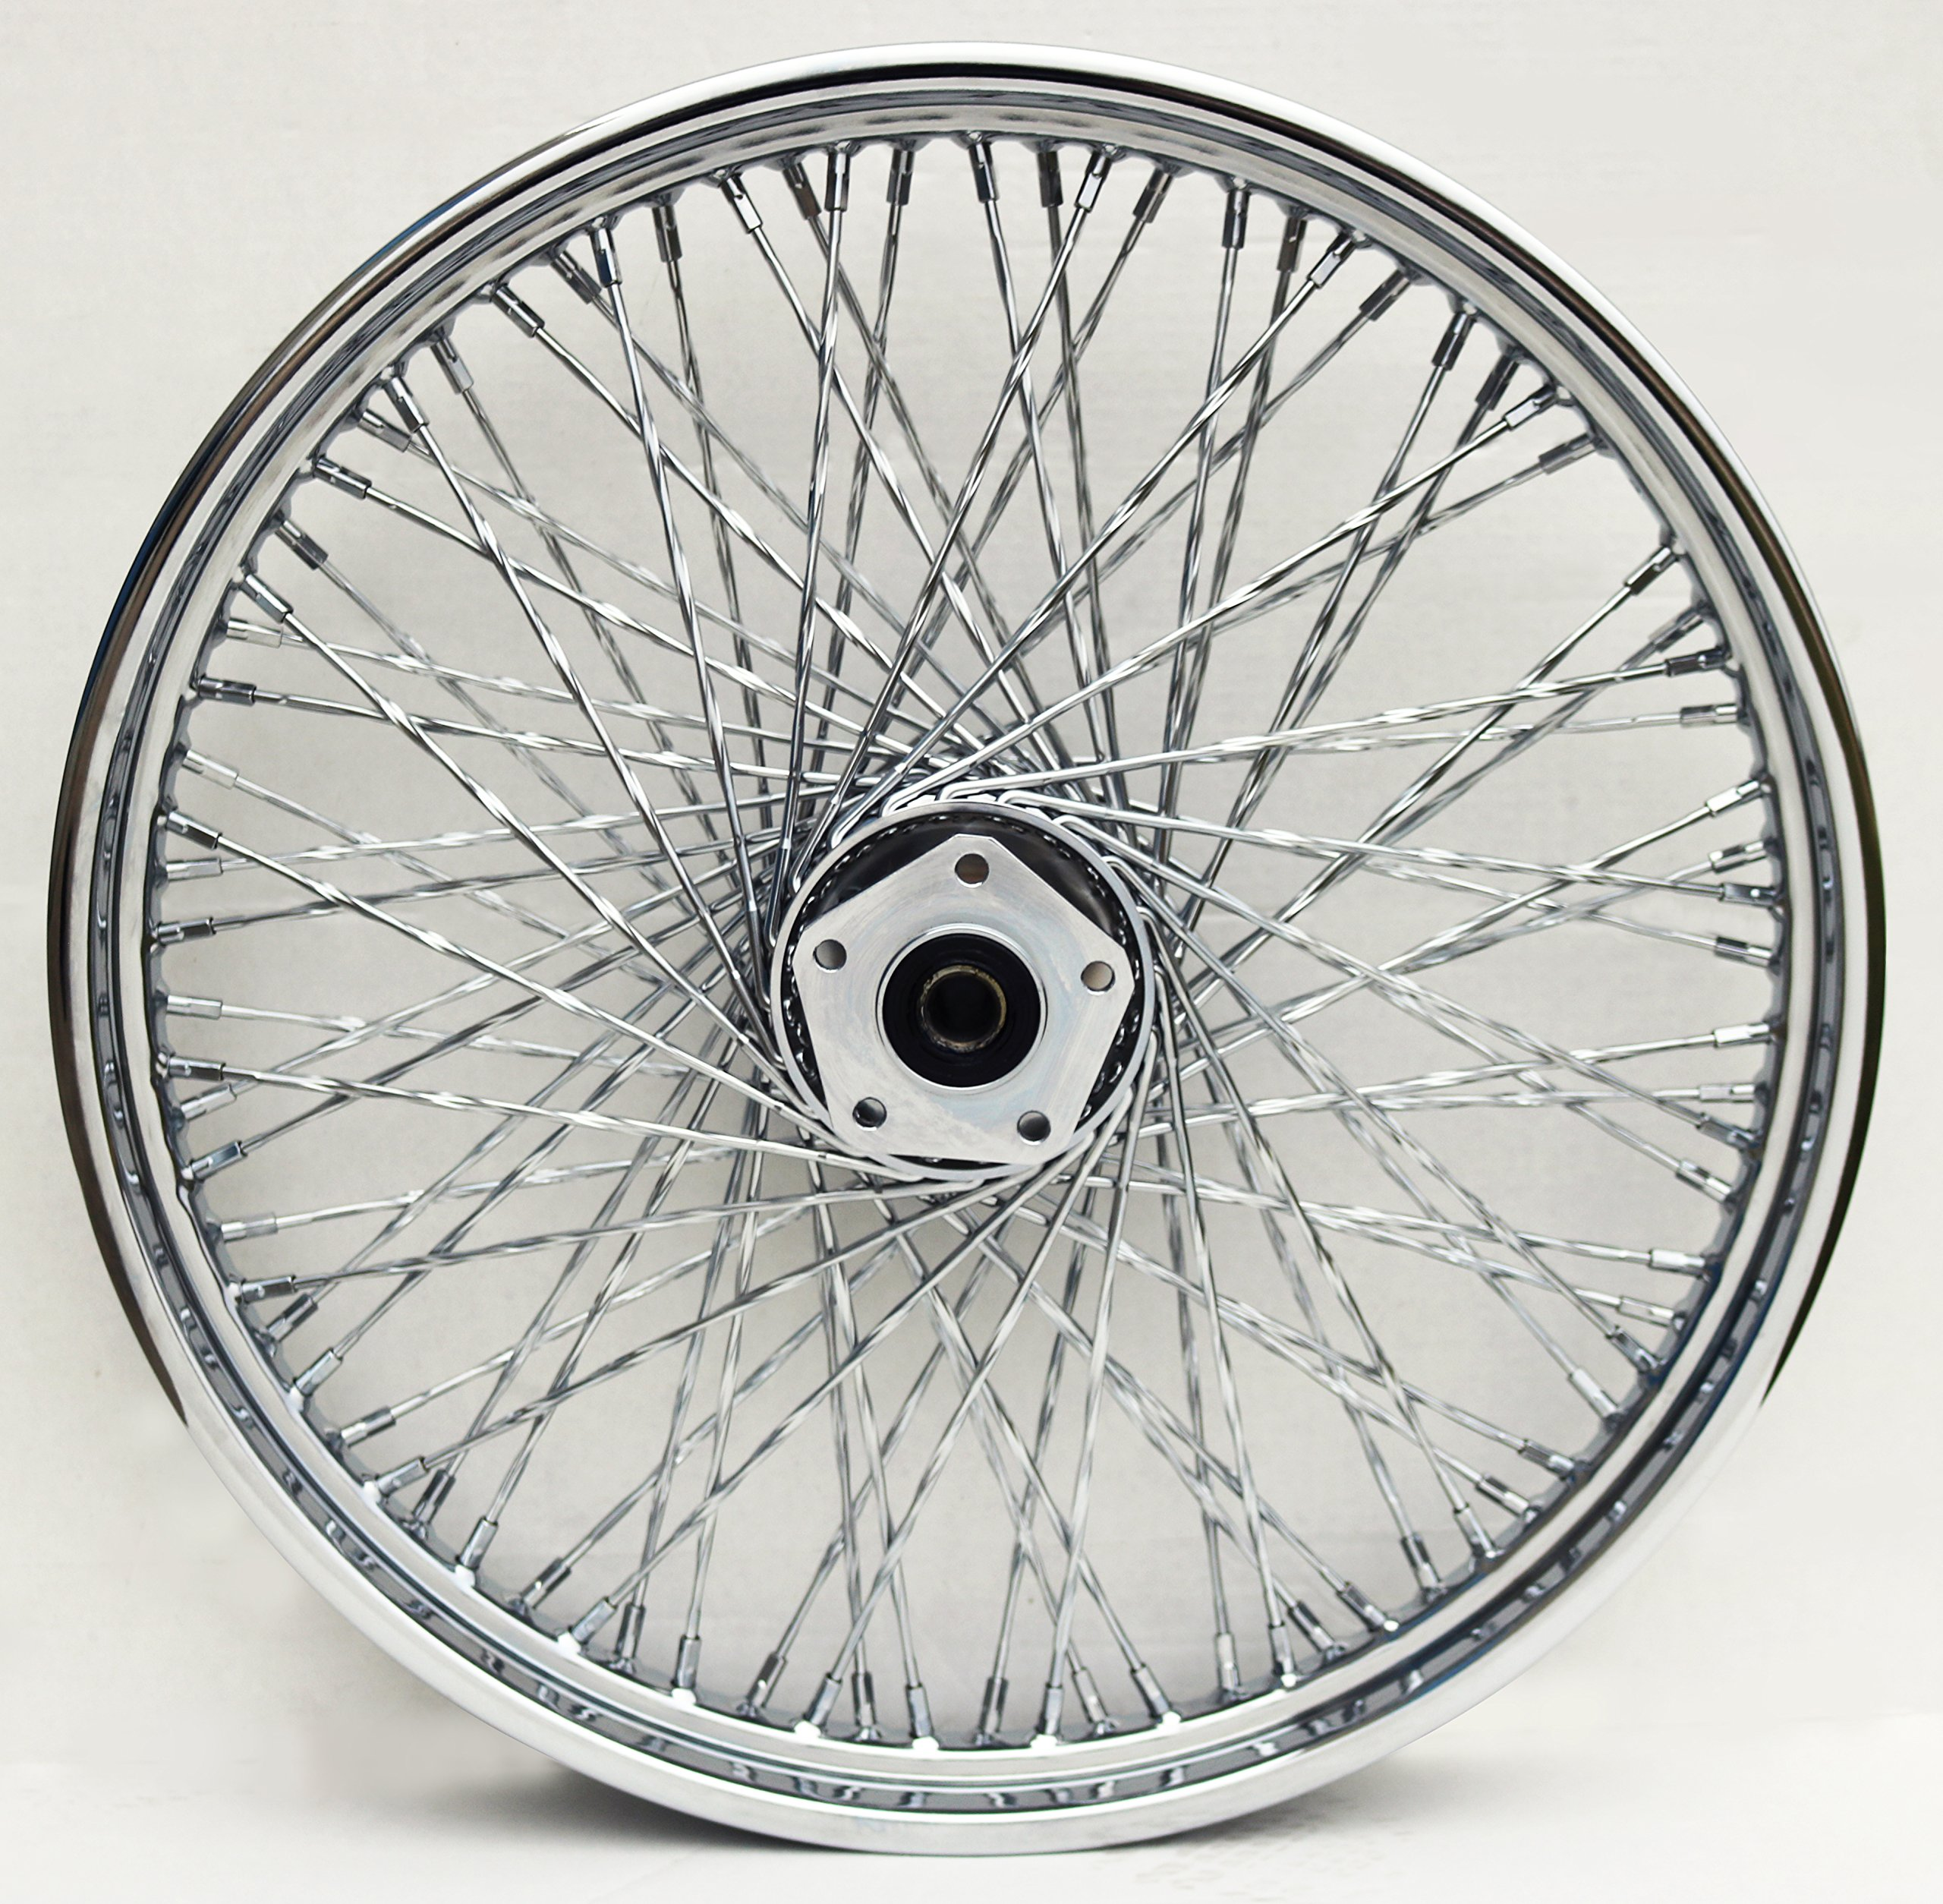 80 SPOKE 21'' X 2.15'' TWISTED WHEEL FOR HARLEY FXST FXDWG DYNA CHOPPER 1984-99 by Ultima / Midwest